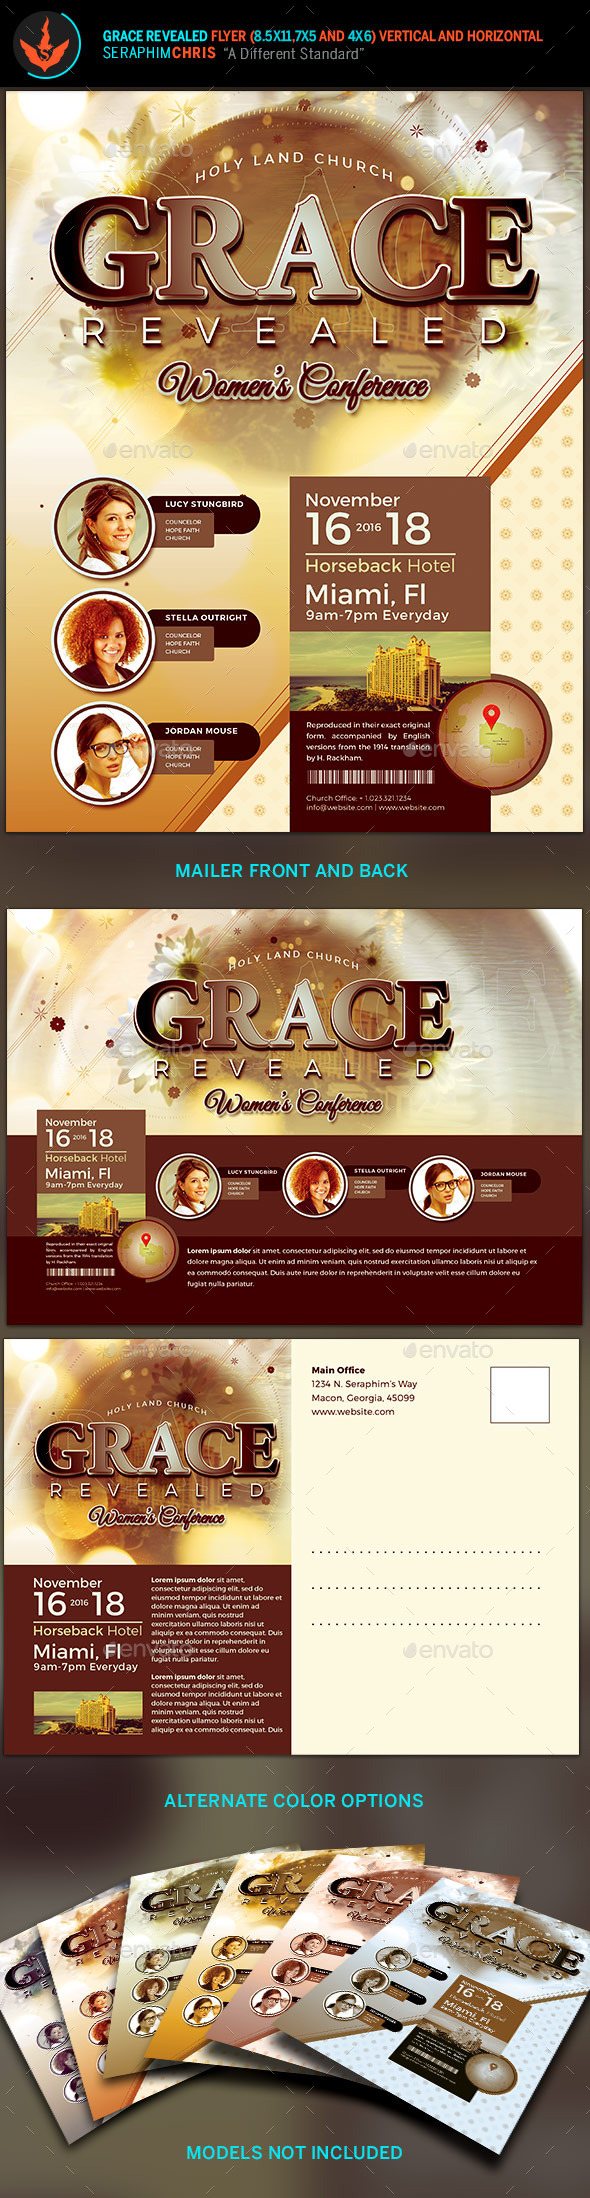 Grace Revealed: Church Flyer Template - Church Flyers